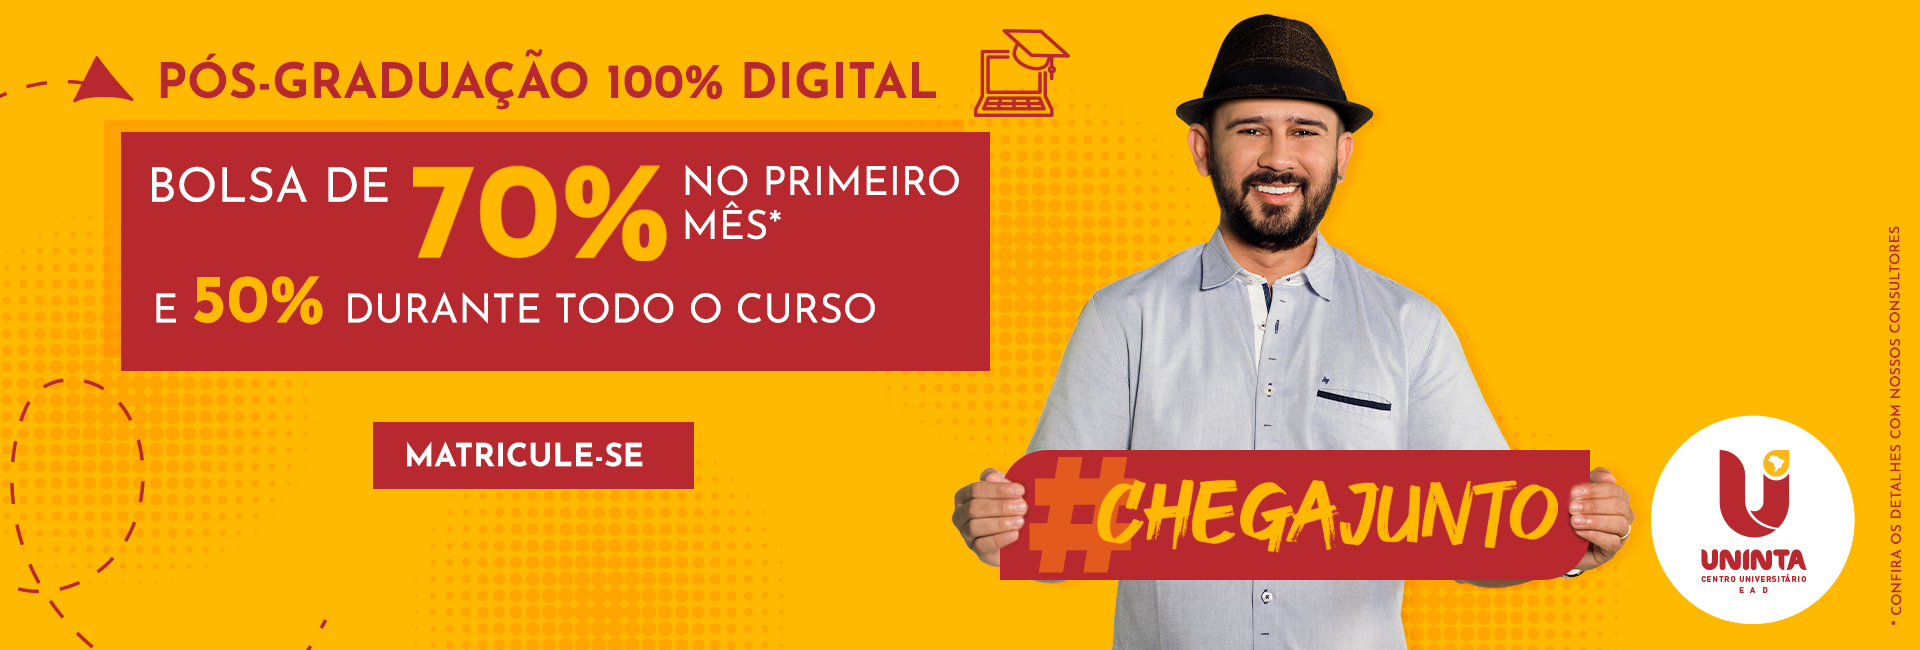 Desktop-Polo-Digital-Promocional-ead